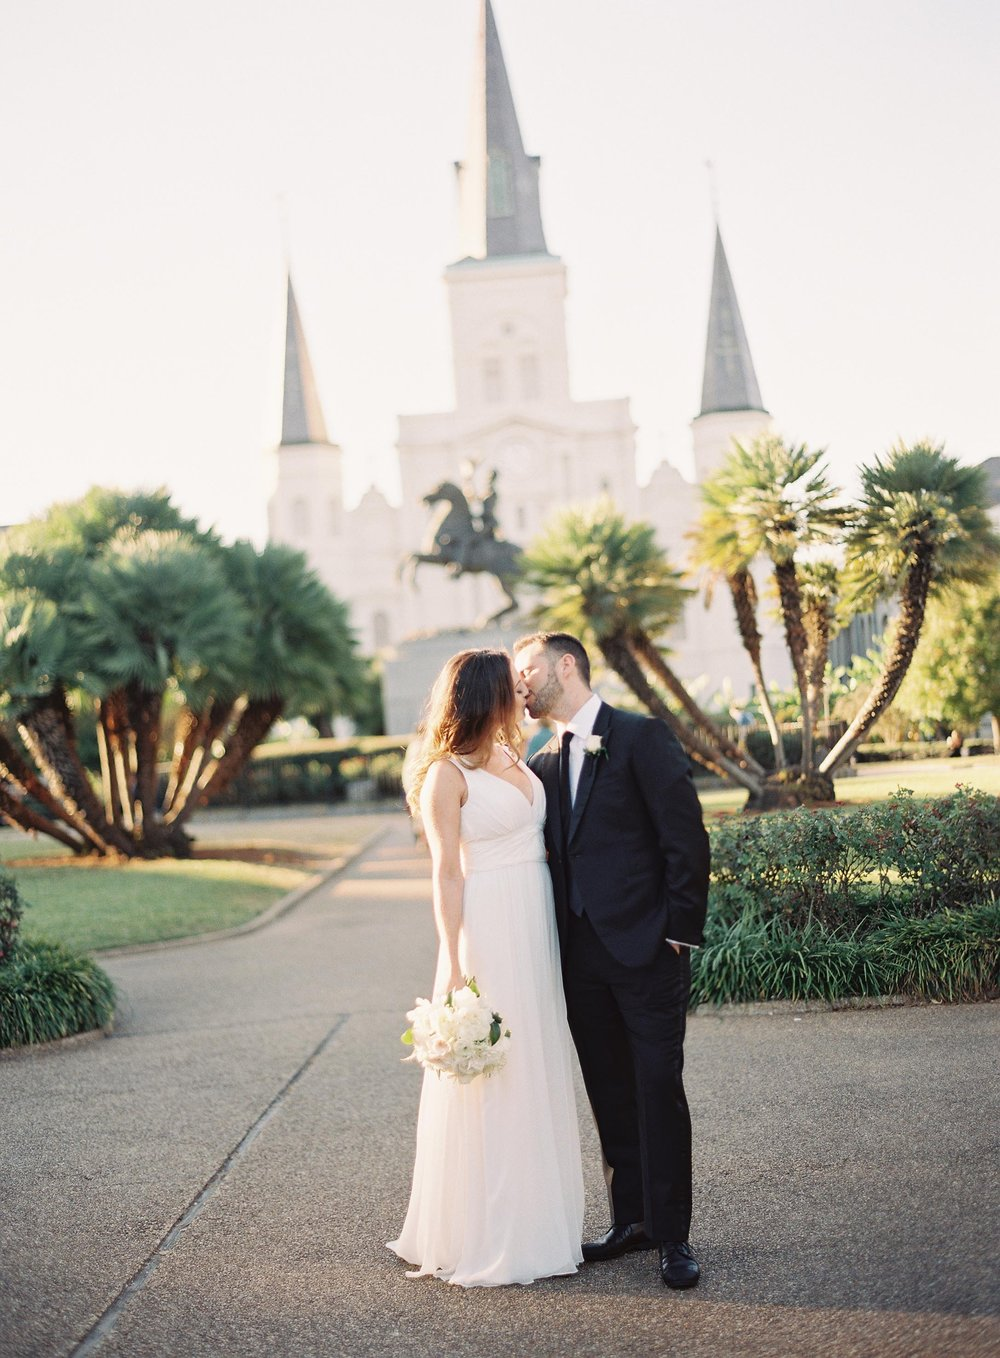 sapphireevents.com | Rylee Hitchner Photography | Latrobe's on Royal Weddings and Events | Luxury Wedding Planning in New Orleans | Sapphire Events